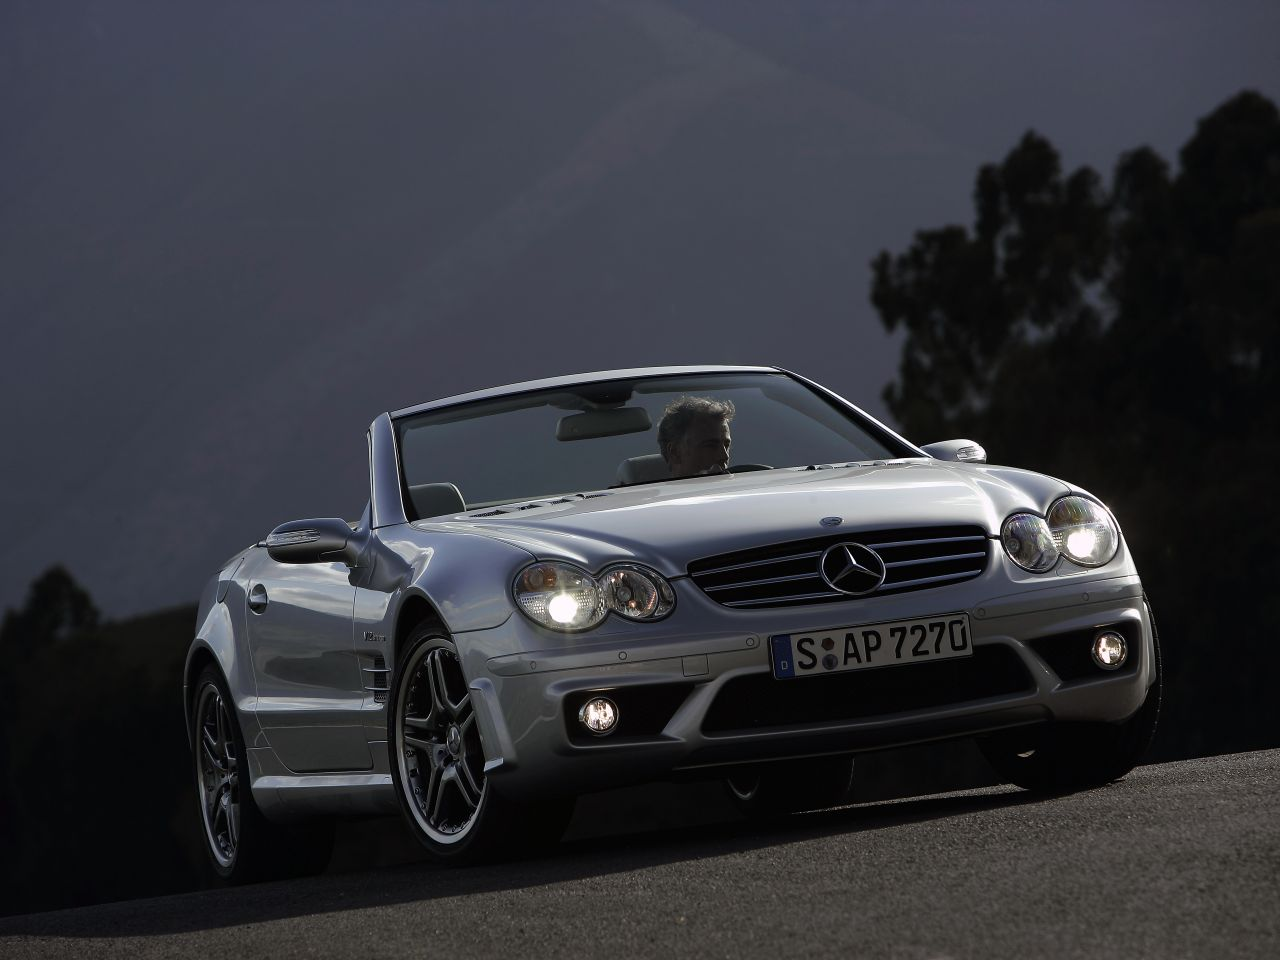 mercedes sl 55 amg sl 65 amg afbeeldingen. Black Bedroom Furniture Sets. Home Design Ideas